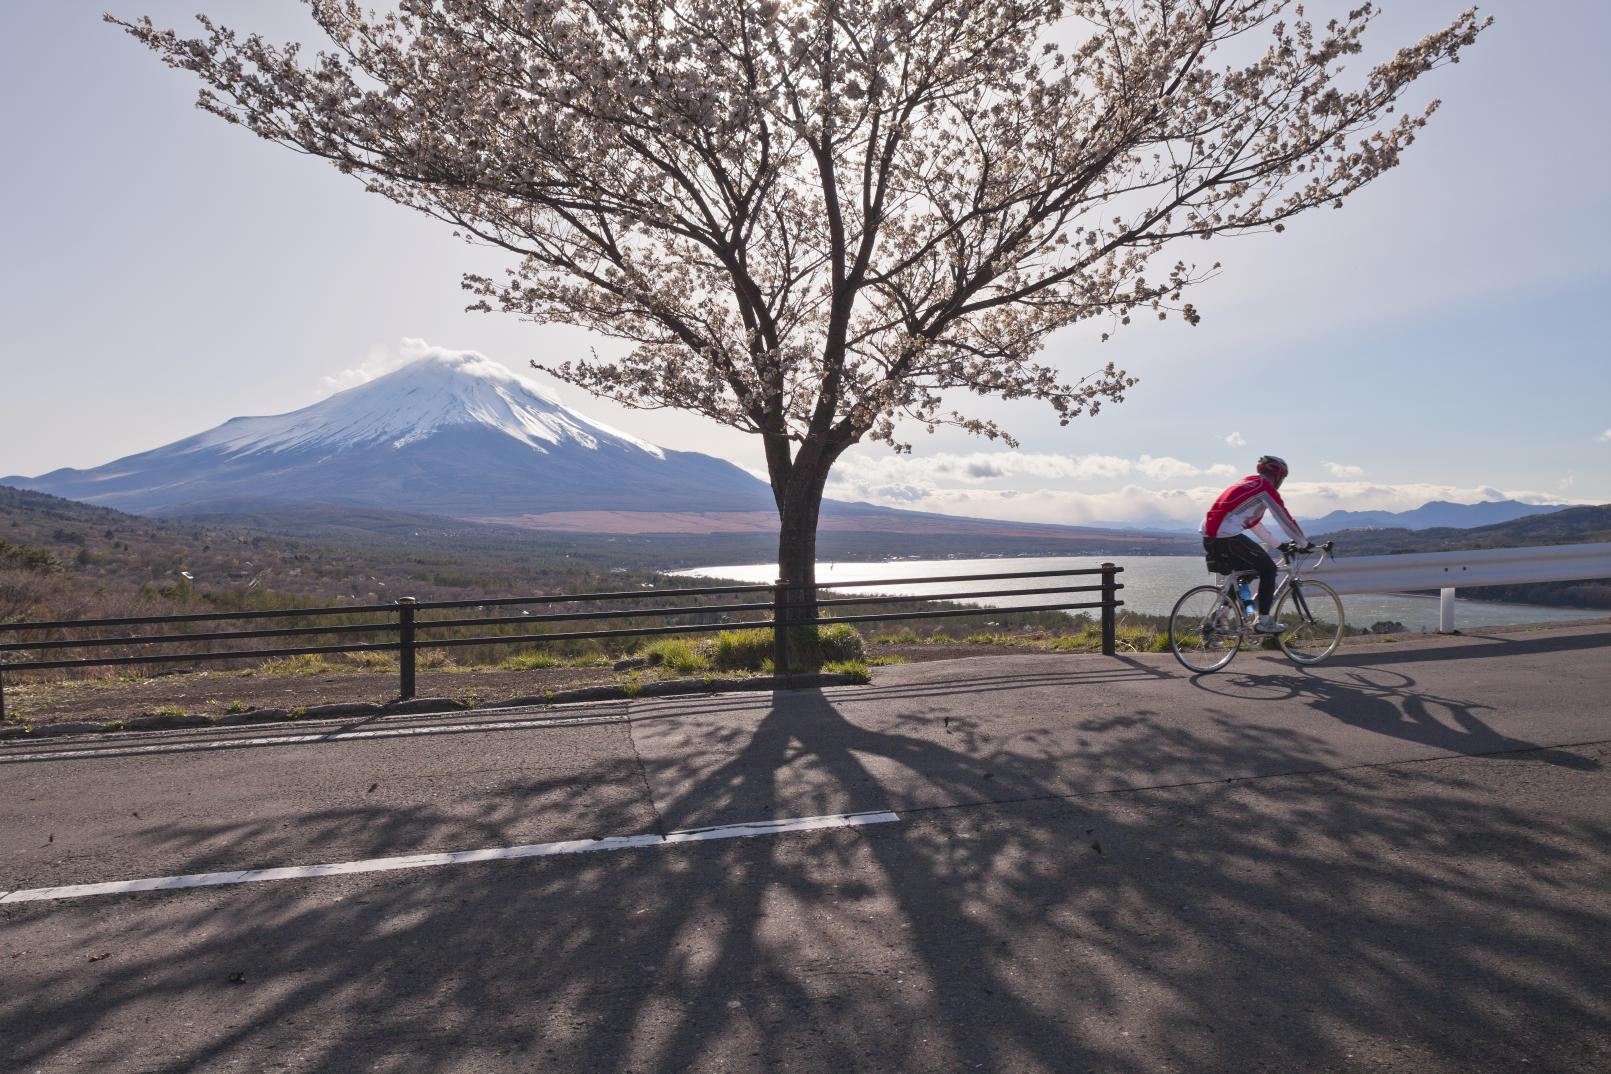 Lake Yamanaka in spring is perfect for cycling